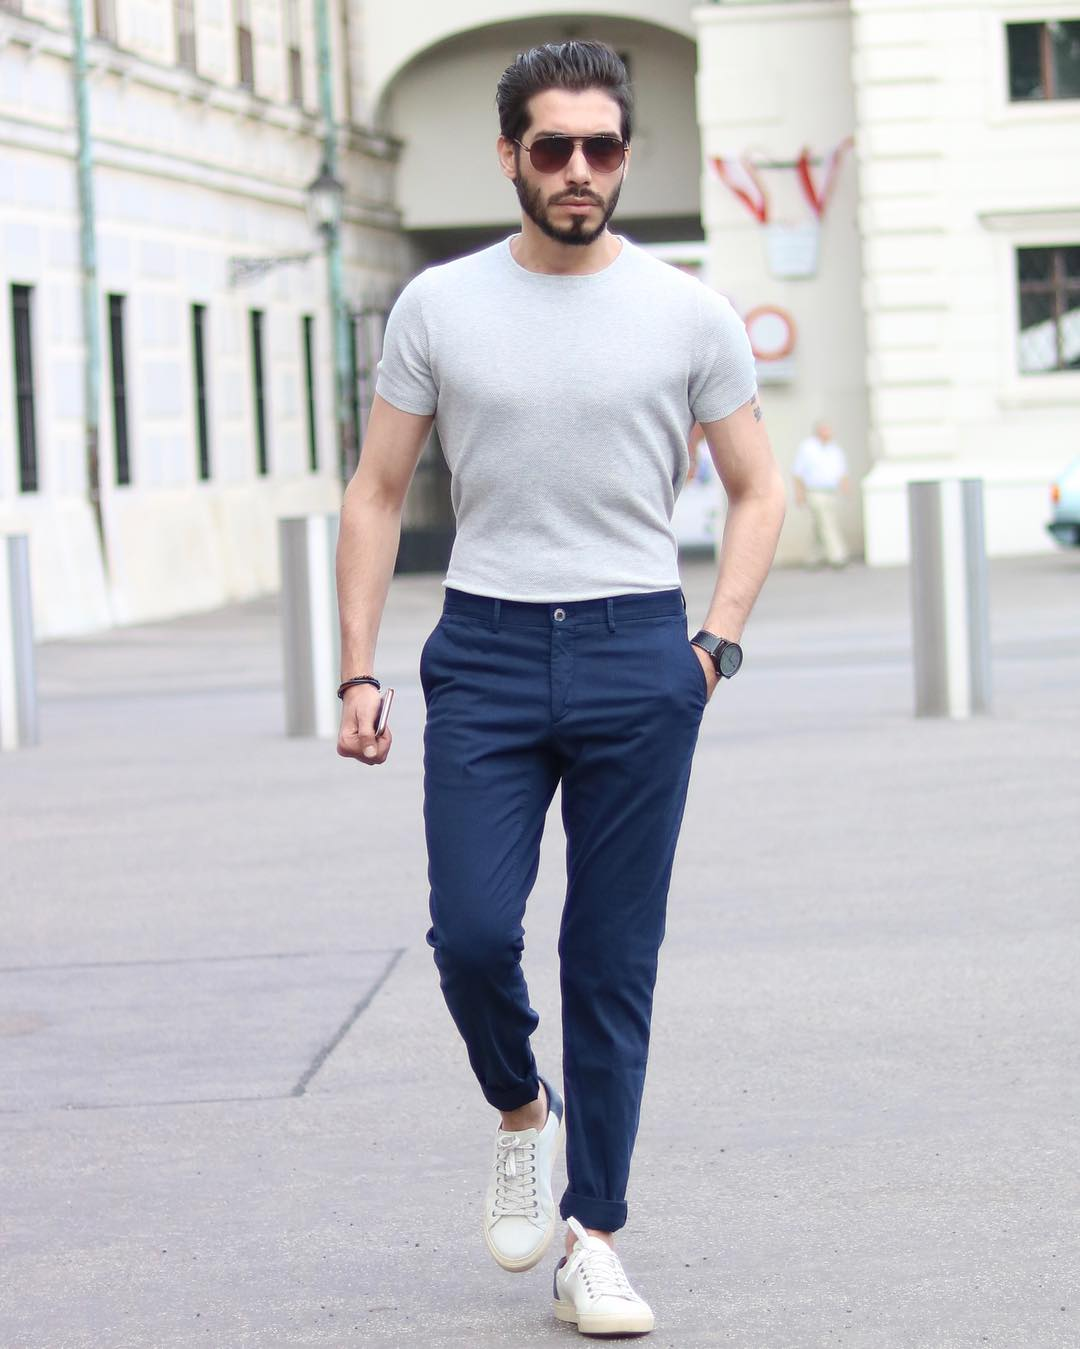 5 Pants & T-shirt Outfits For Men #casualstyle #mensfashion #pantsandtshirt #streetstyle